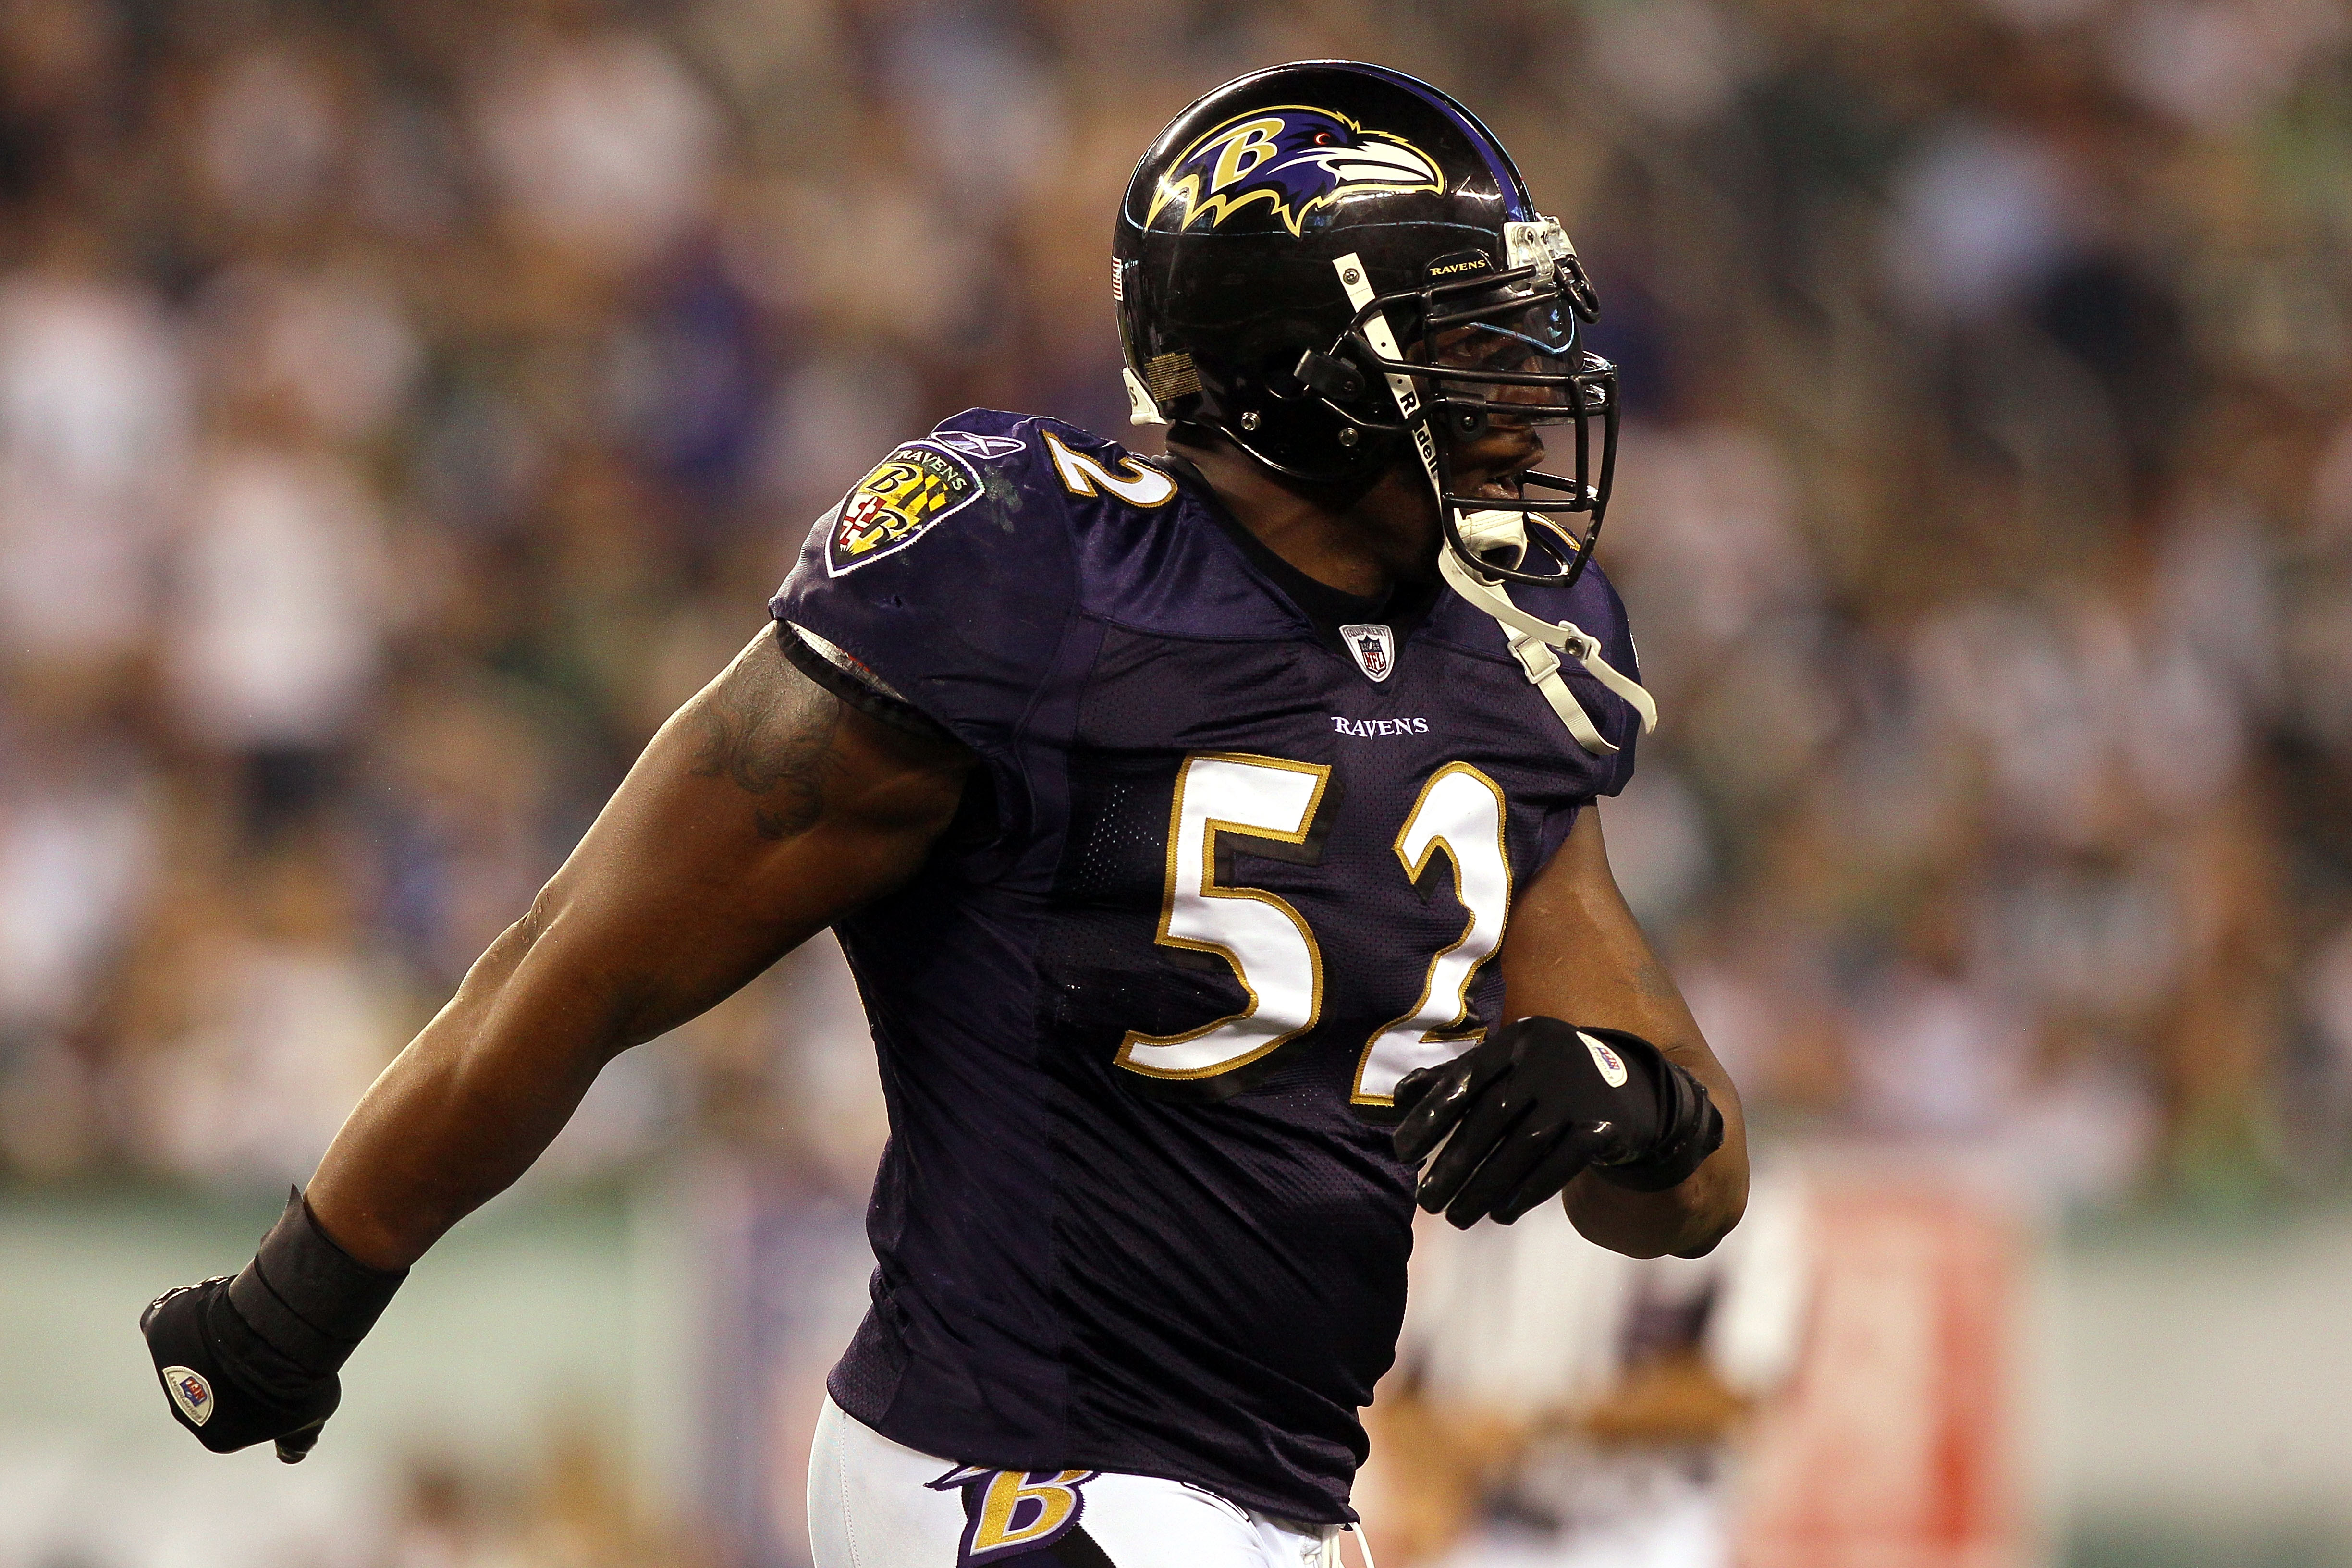 EAST RUTHERFORD, NJ - SEPTEMBER 13:  Ray Lewis #52 of the Baltimore Ravens reacts after a play against the New York Jets during their home opener at the New Meadowlands Stadium on September 13, 2010 in East Rutherford, New Jersey.  (Photo by Jim McIsaac/G